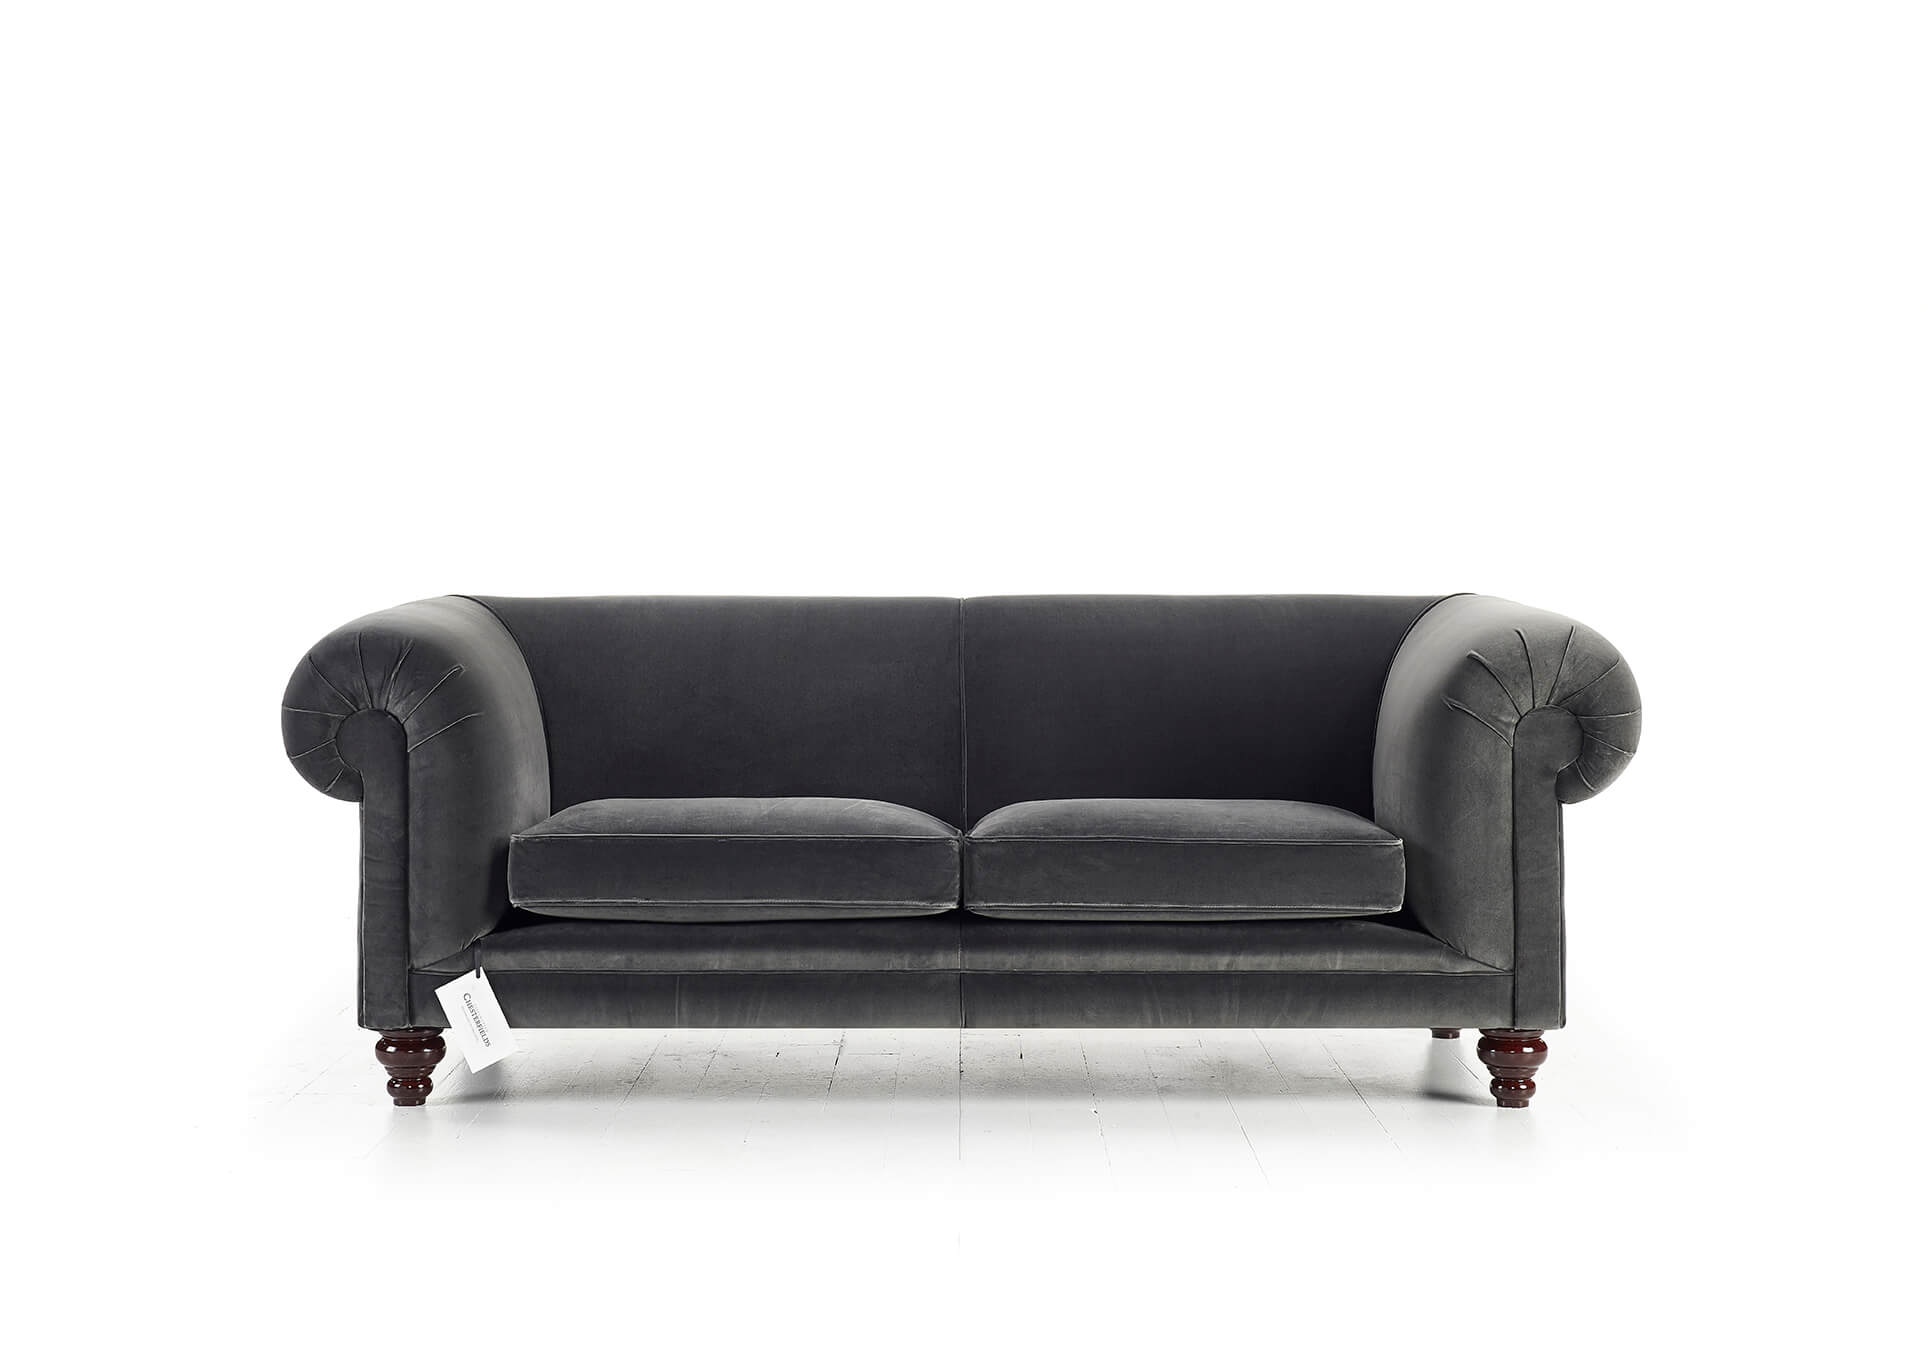 Canapé Chesterfield Northbank en velours gris